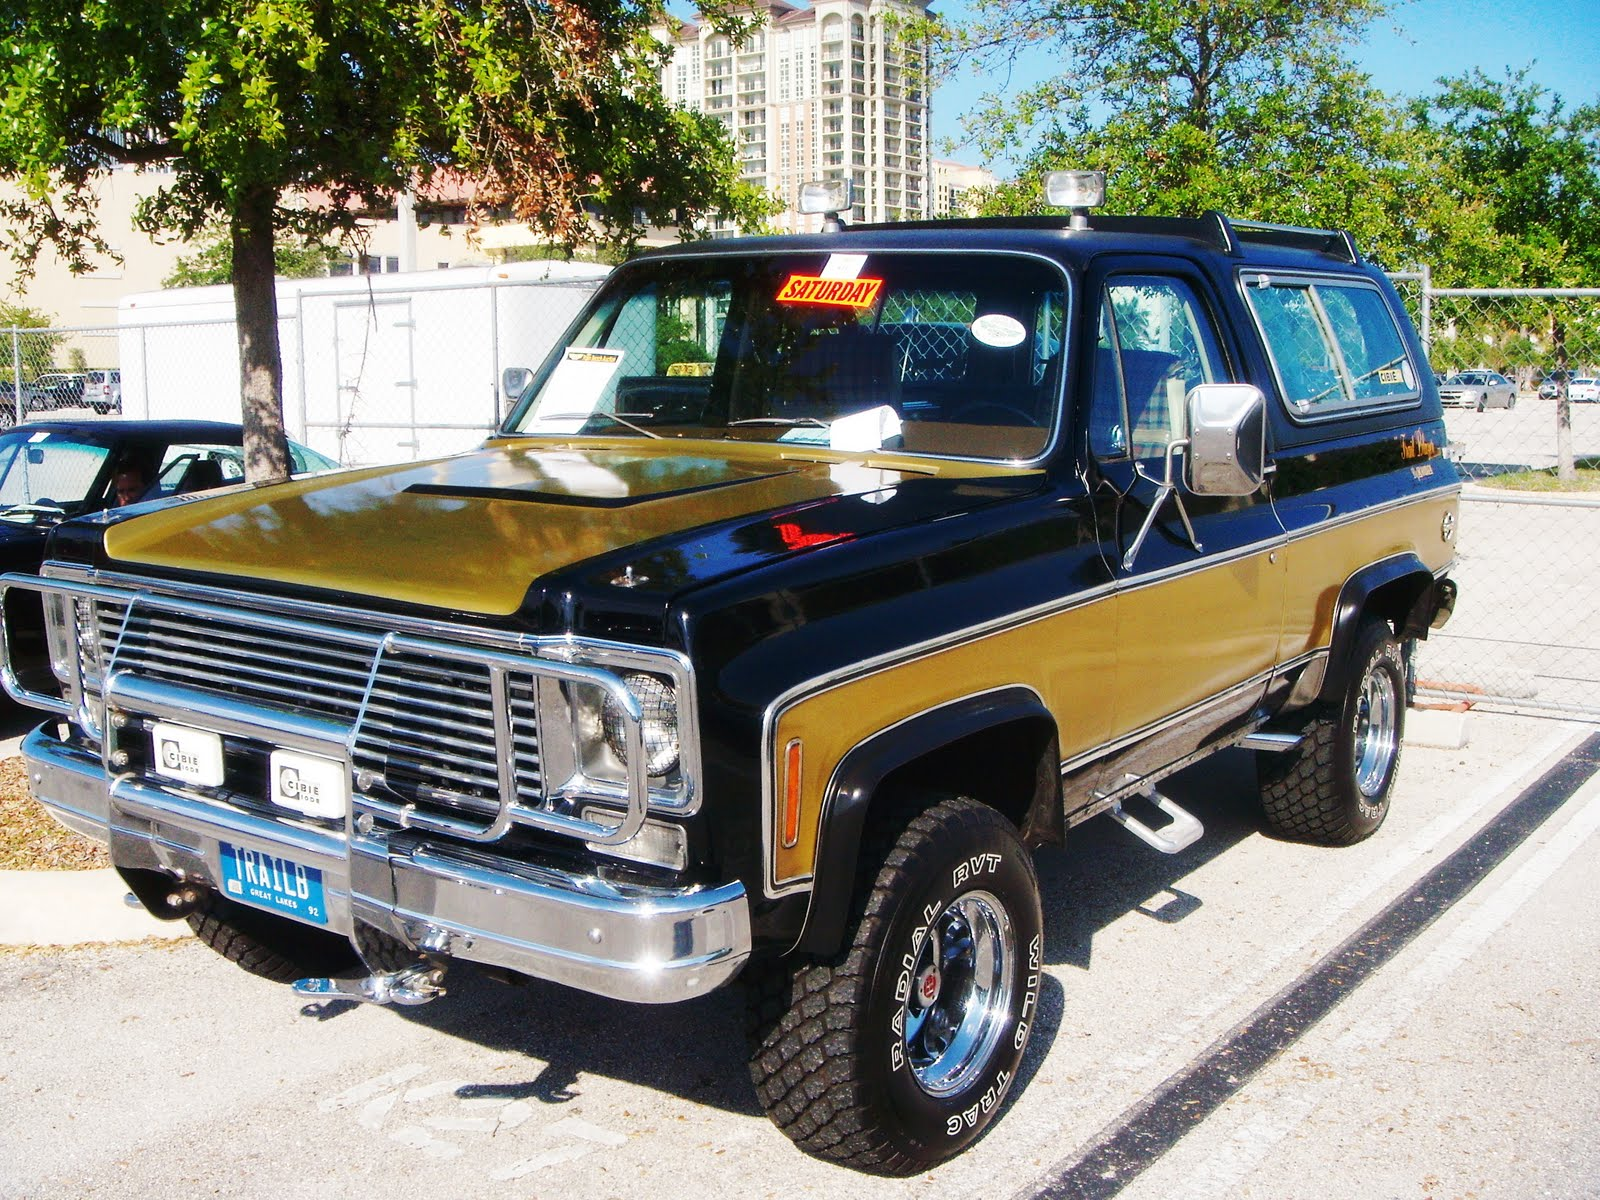 on the auction block 1978 chevrolet blazer vic hickey edition [ 1600 x 1200 Pixel ]